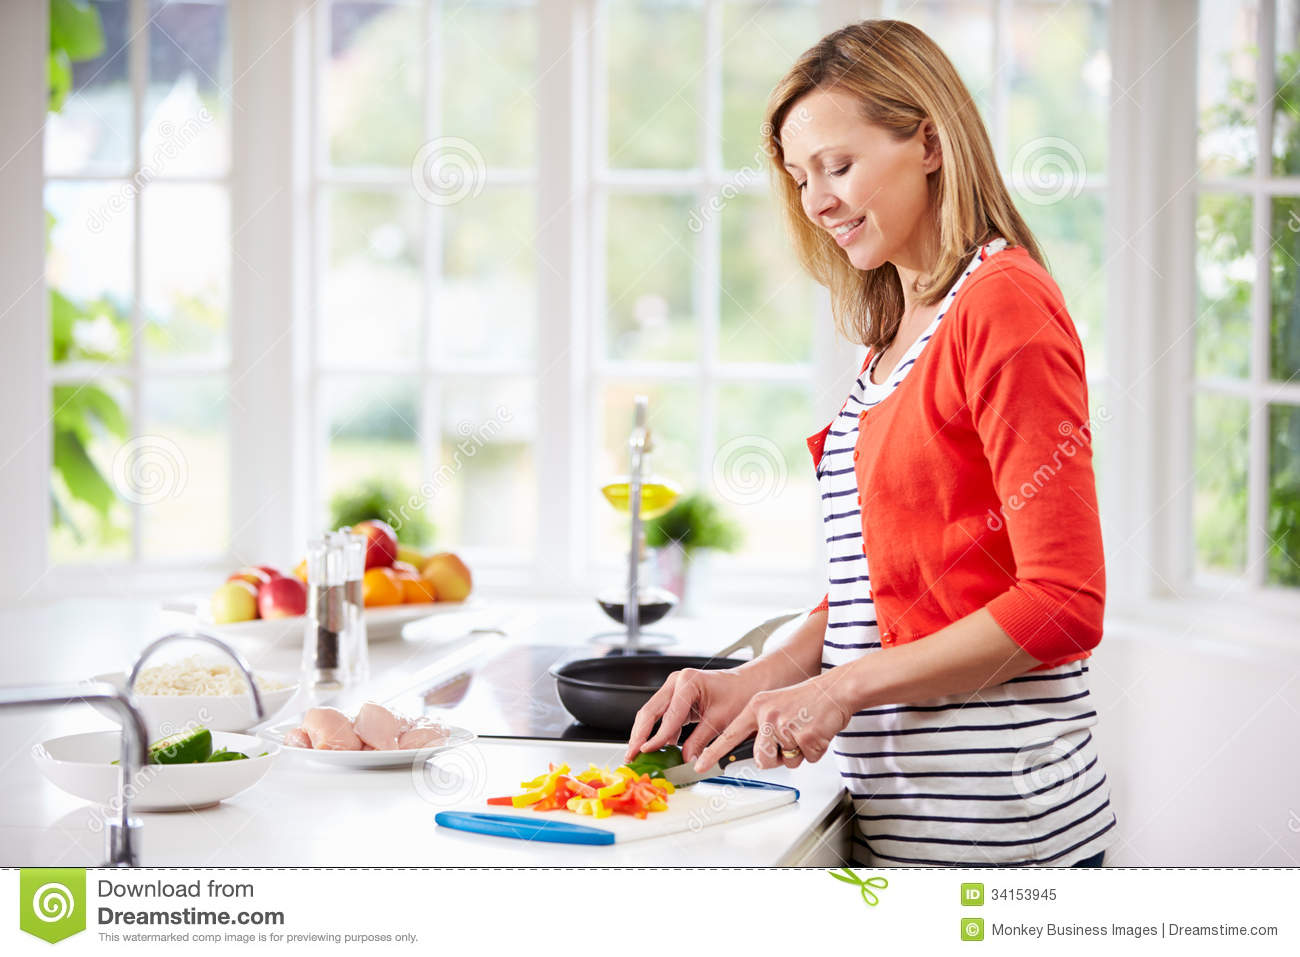 woman standing at counter preparing meal in kitchen stock image